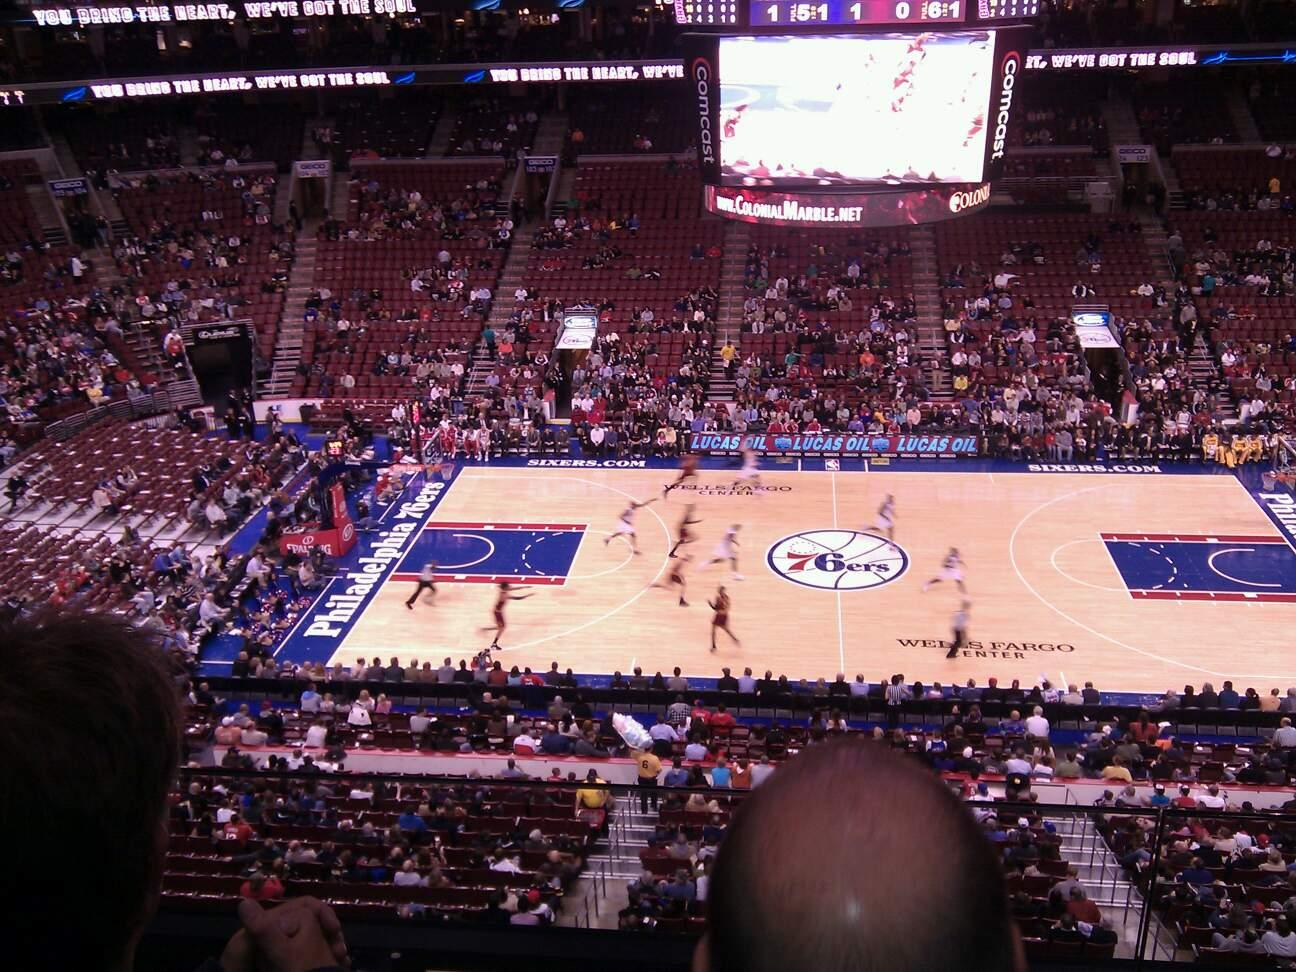 Wells Fargo Center Section 213 Row 2 Seat 5